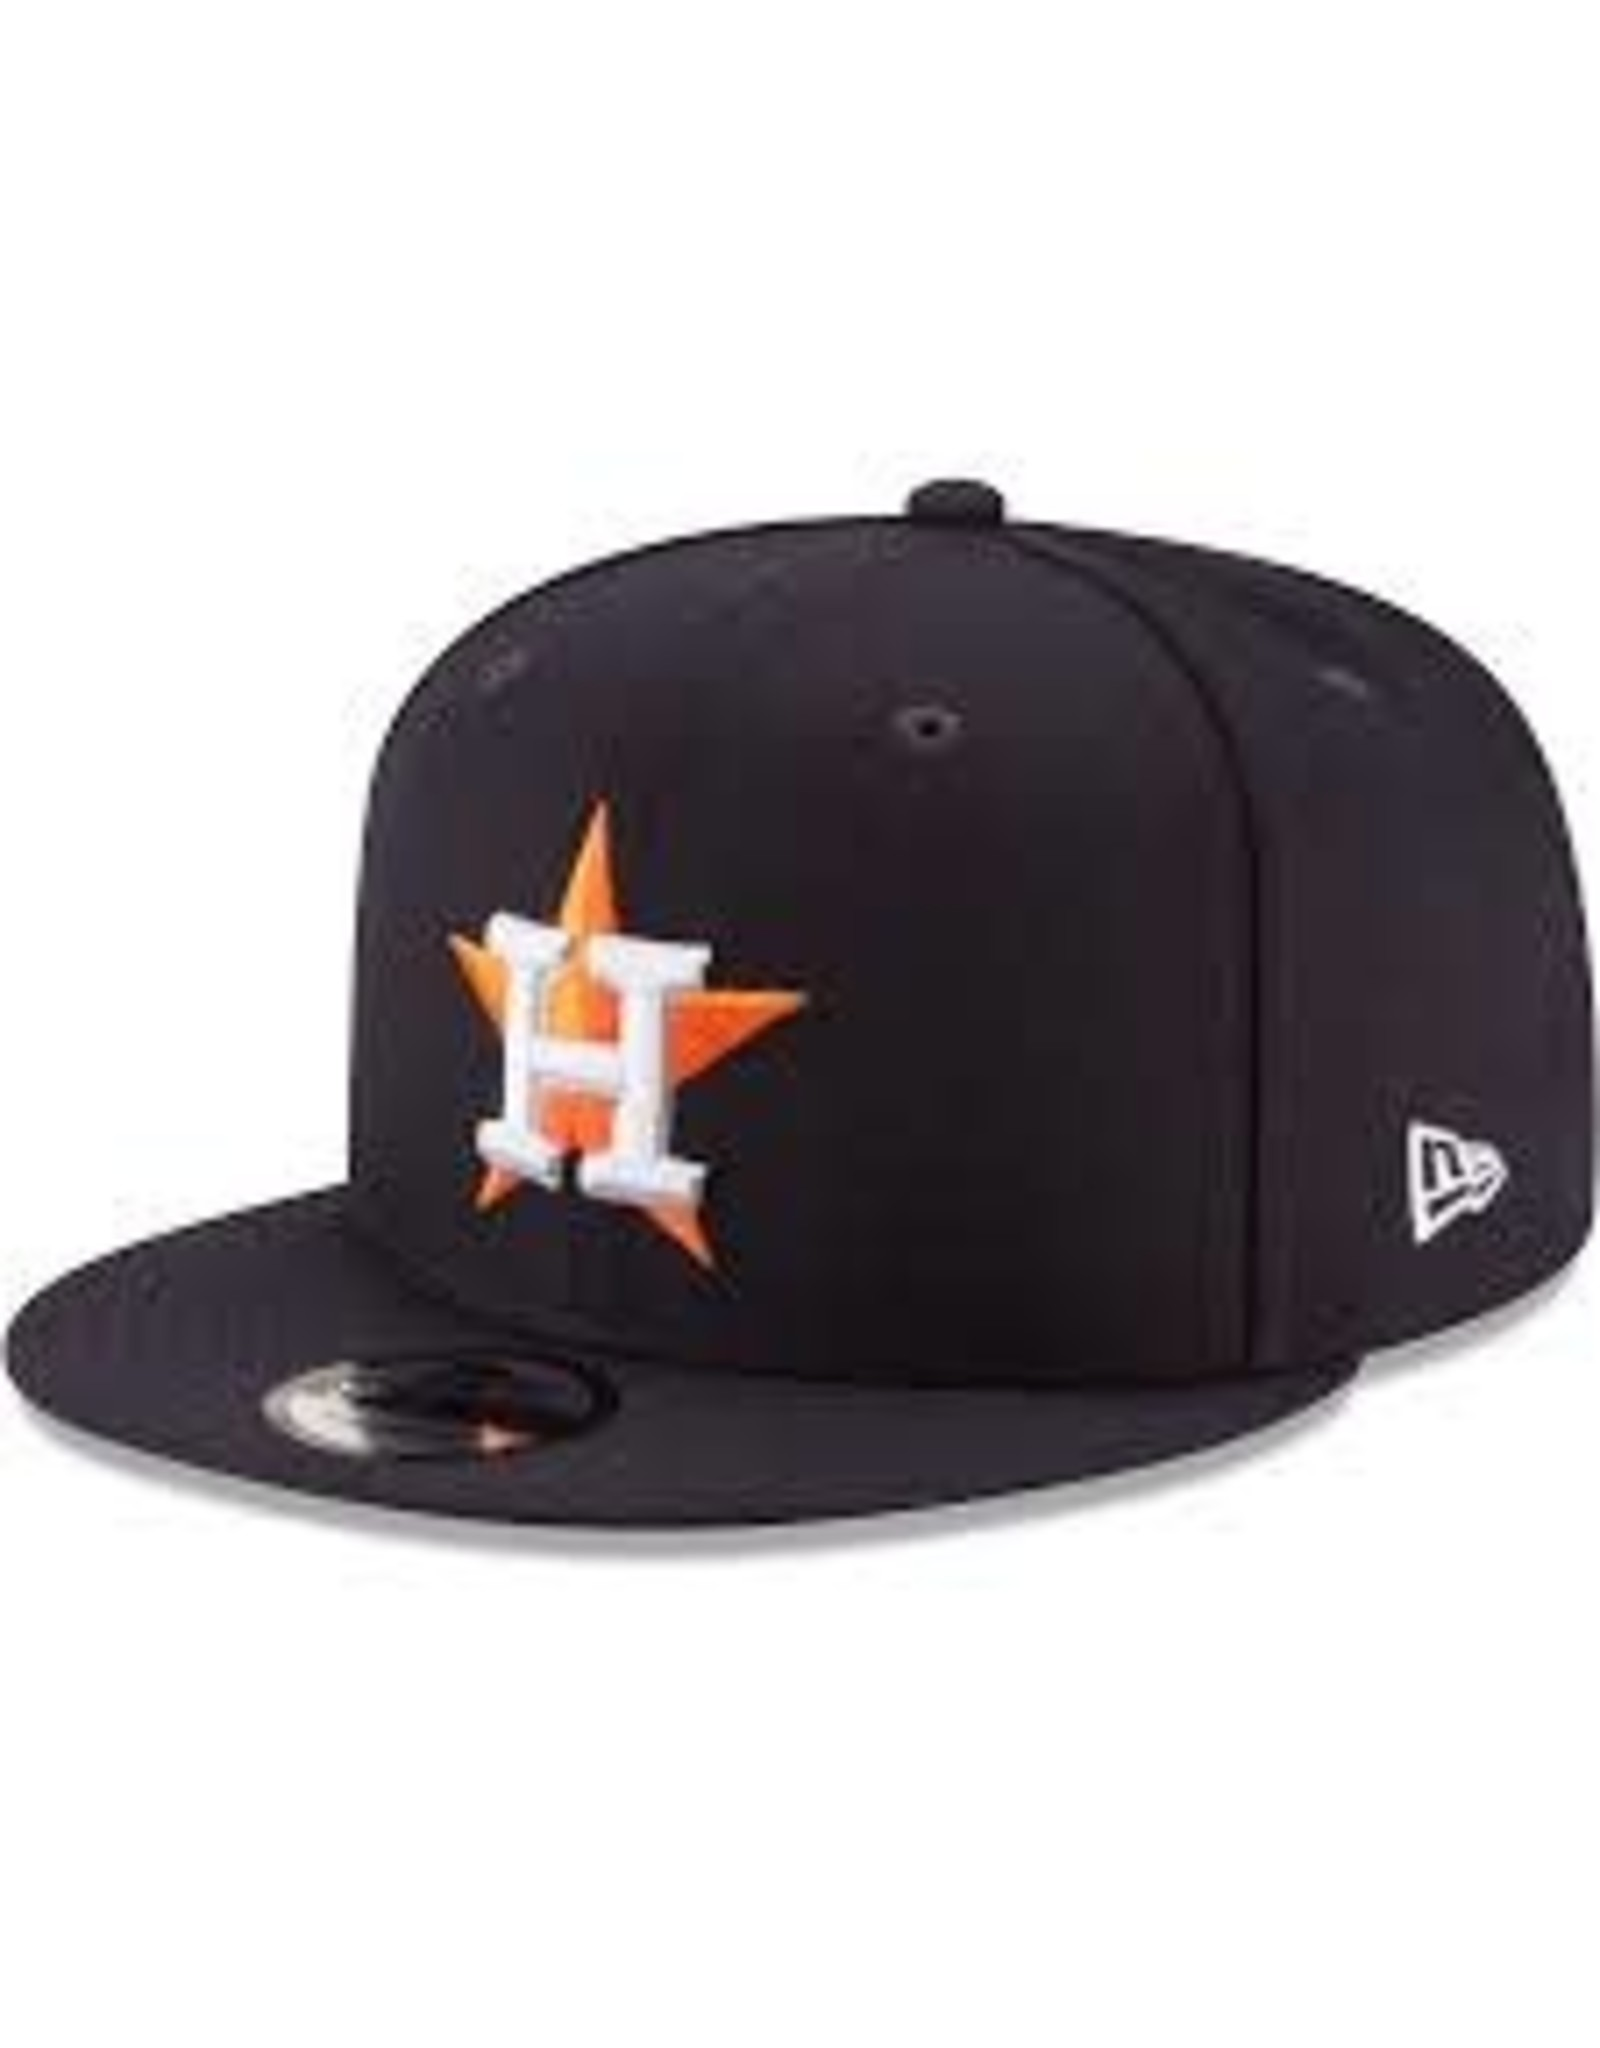 New Era - Houston Astros Team Color - 9FIFTY Adjustable Snapback Hat - Navy